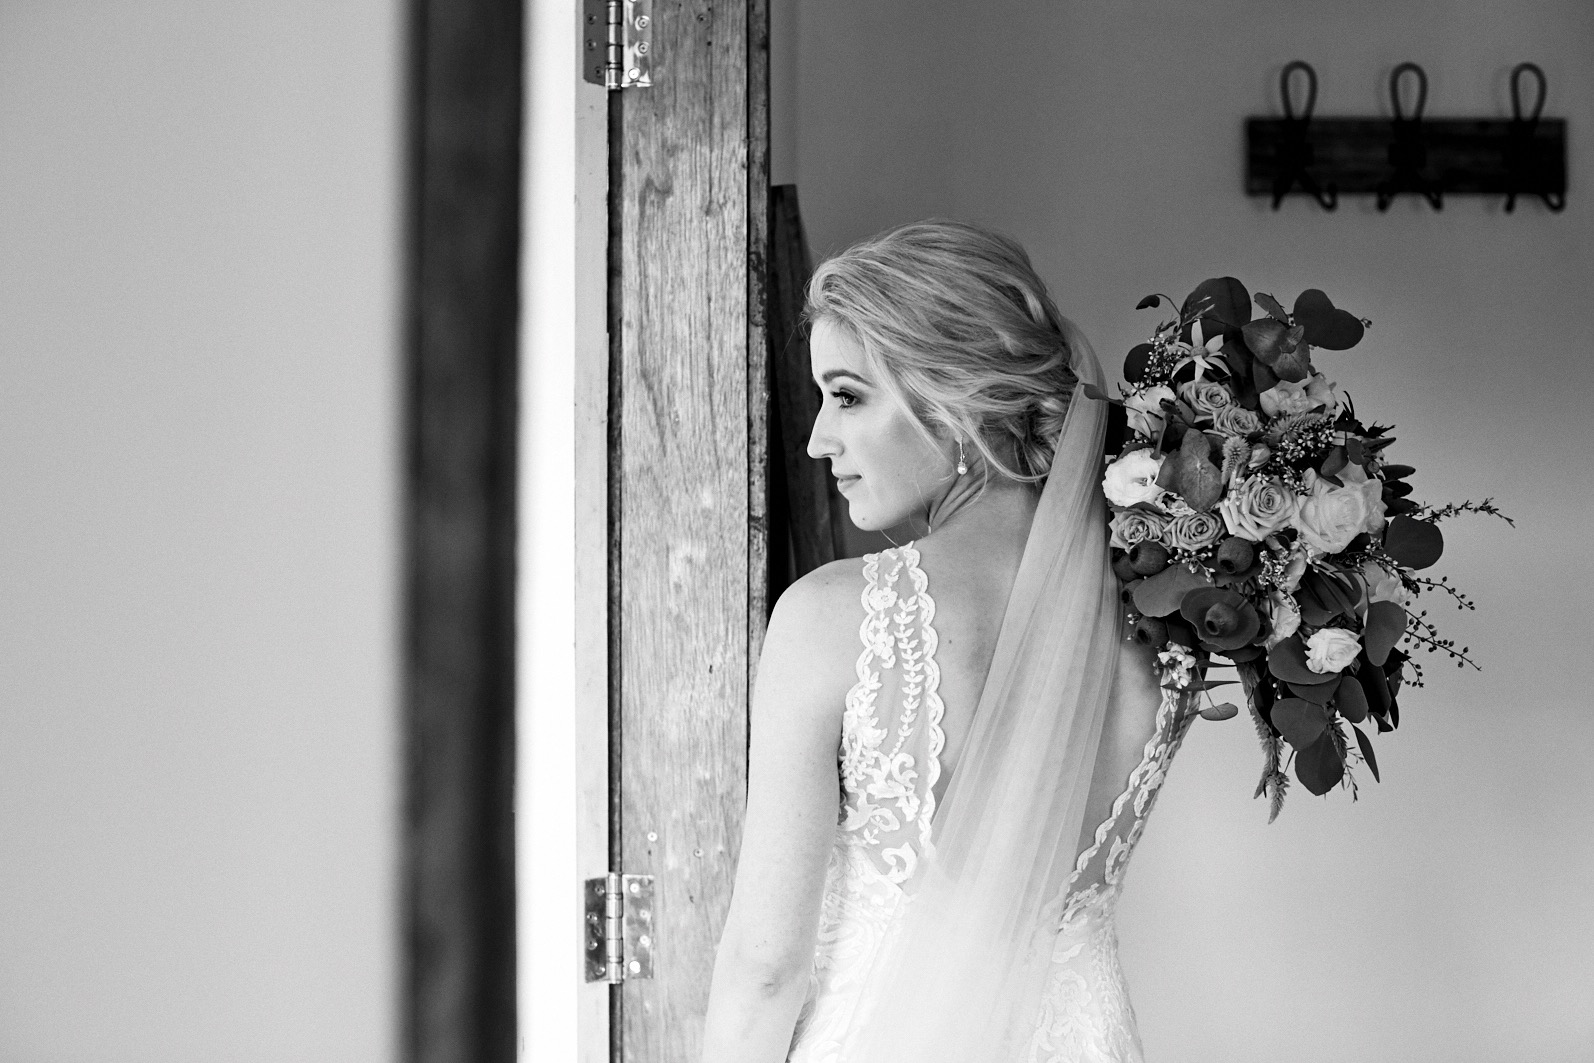 Bride getting ready for her wedding at The Stables of Somersby